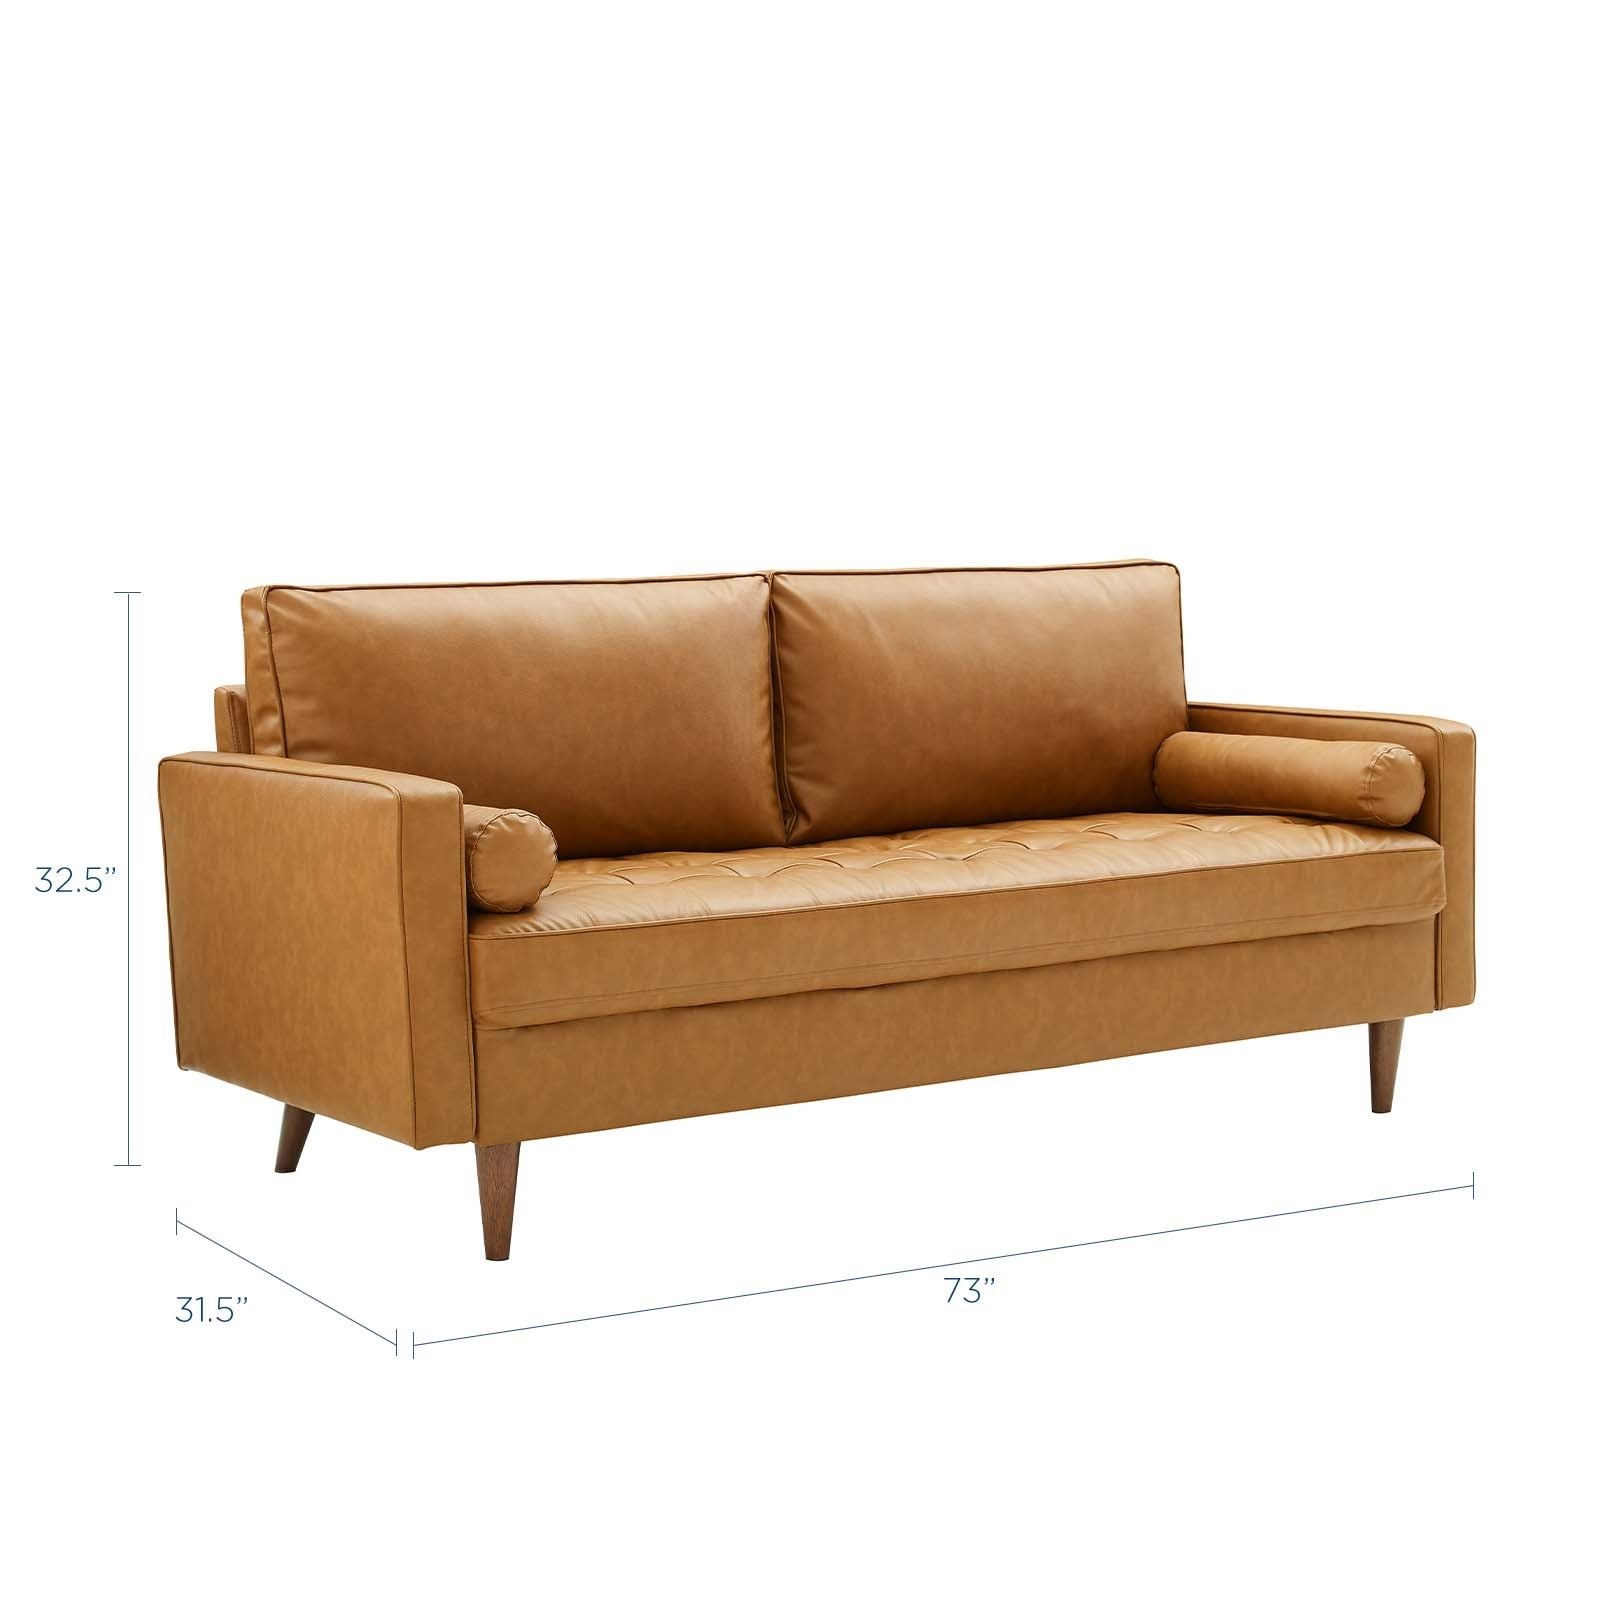 Valour Tan Upholstered Faux Leather